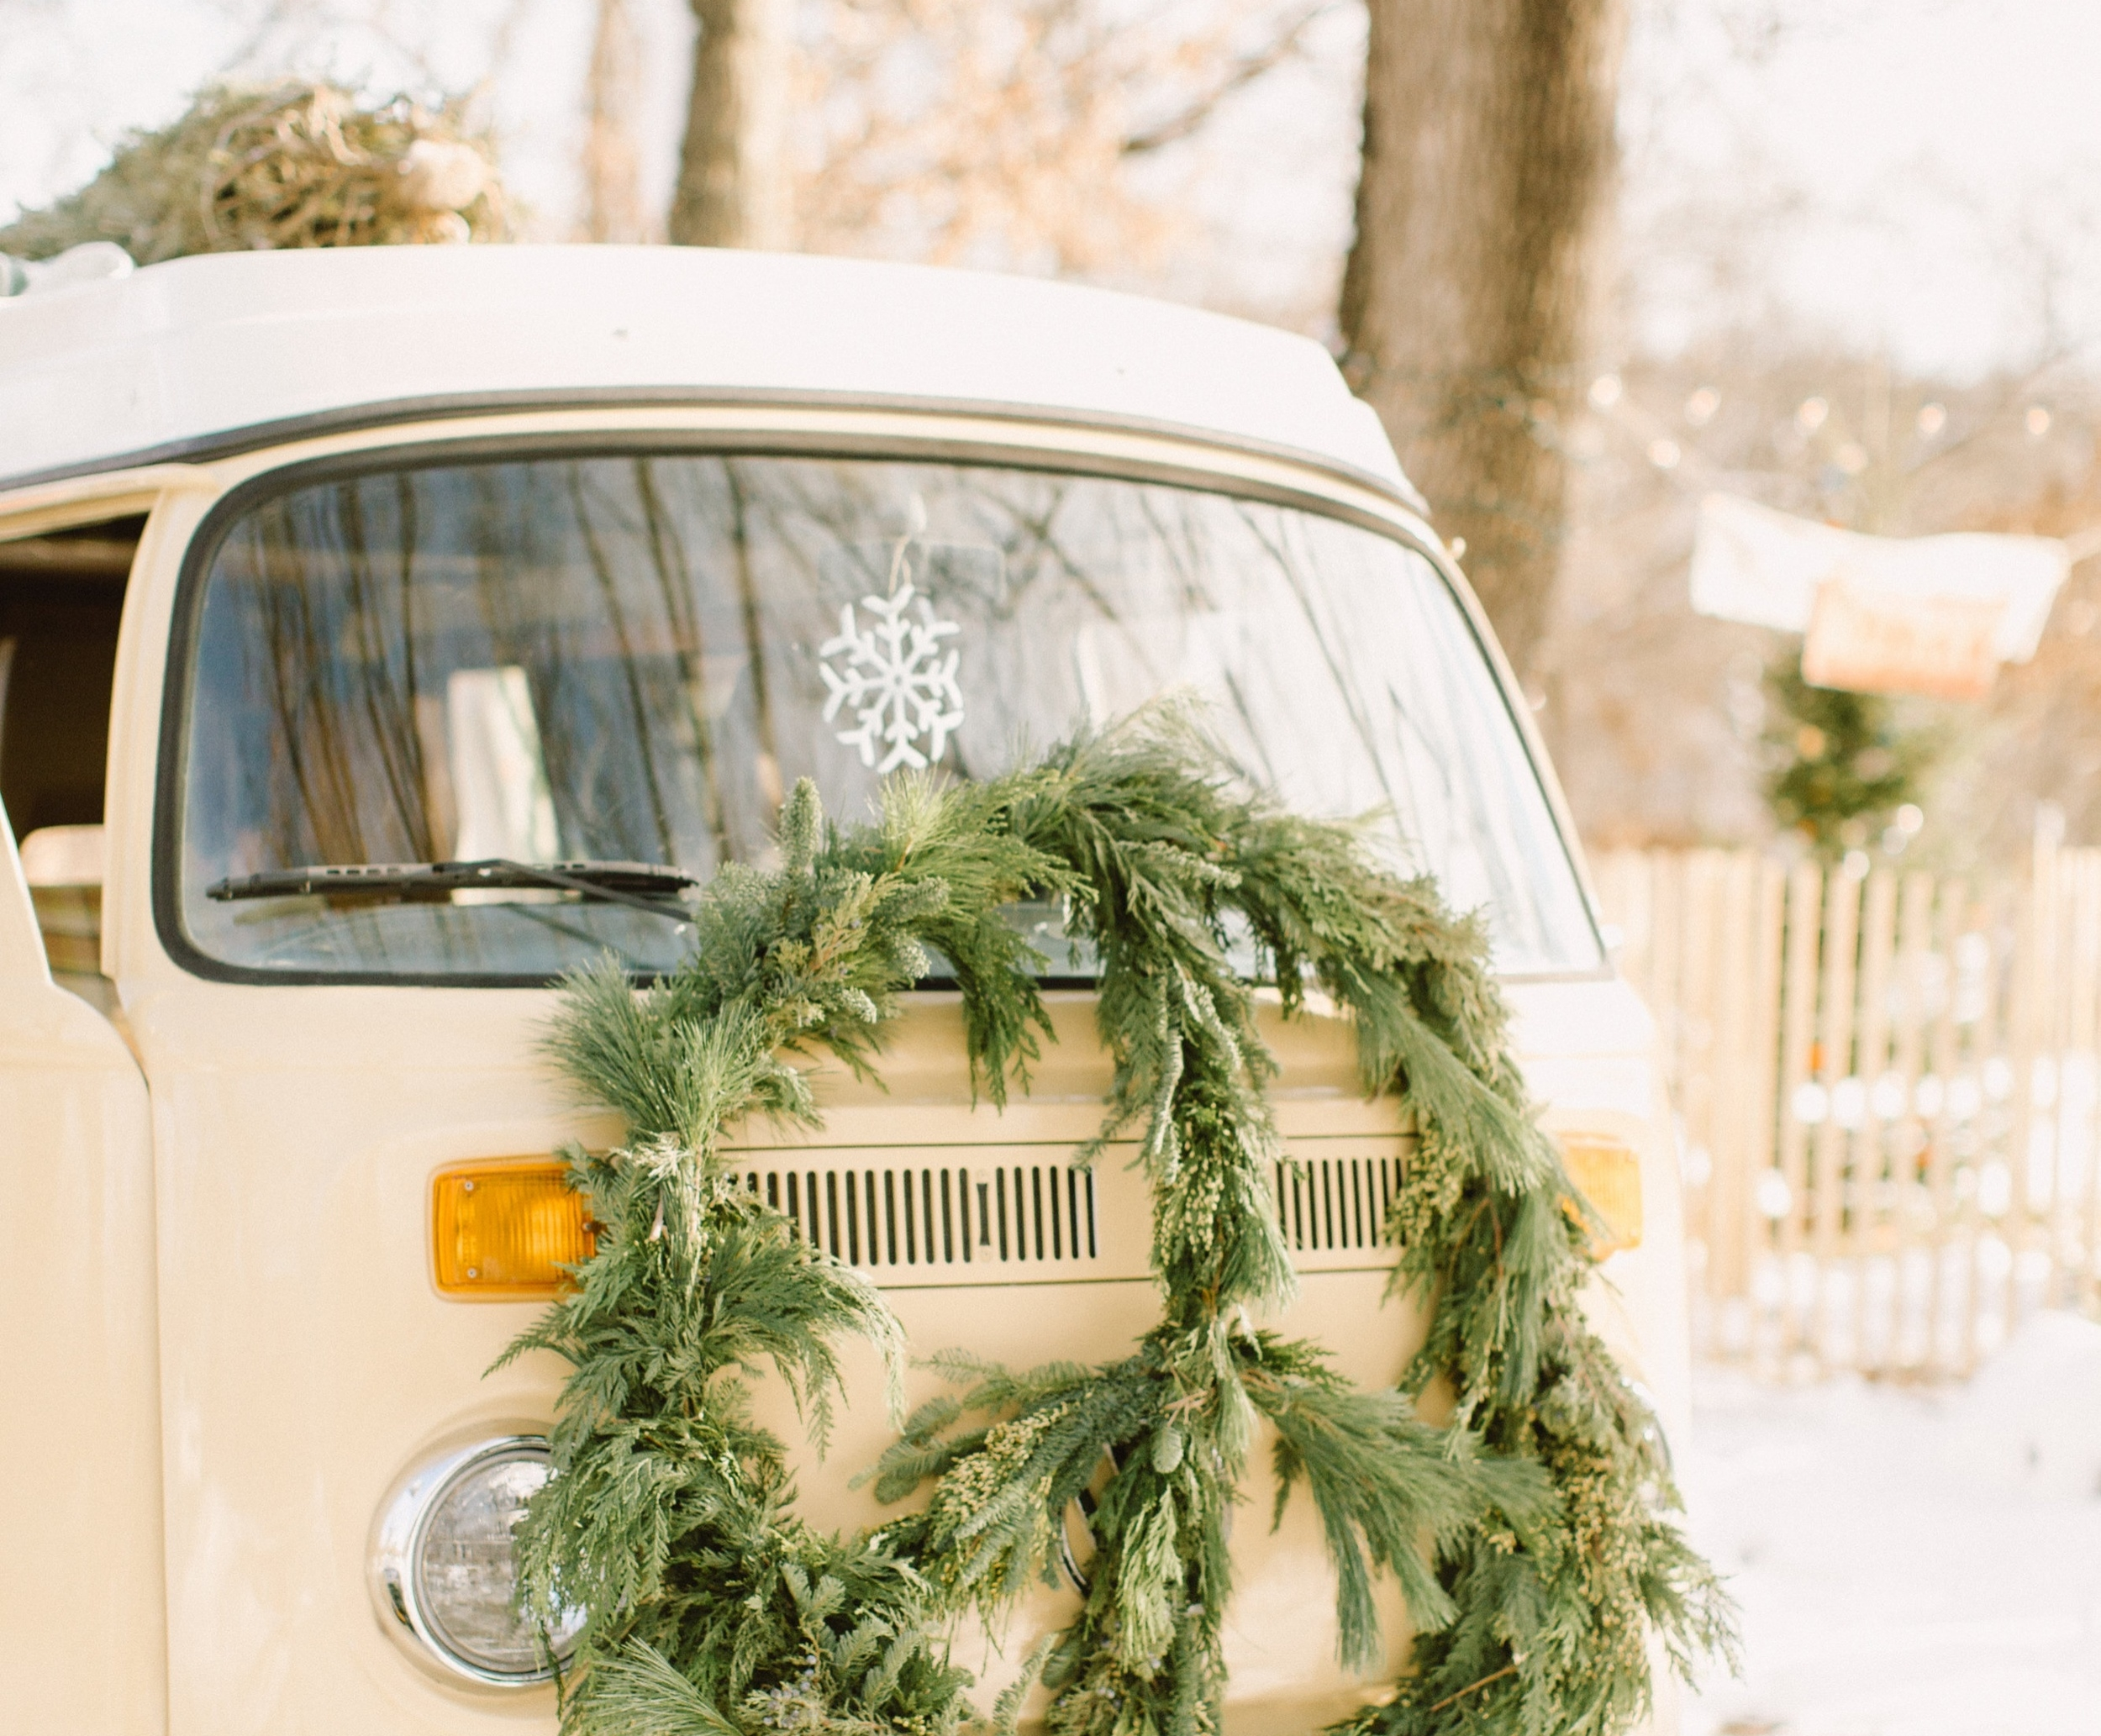 Willow, the VW Bus